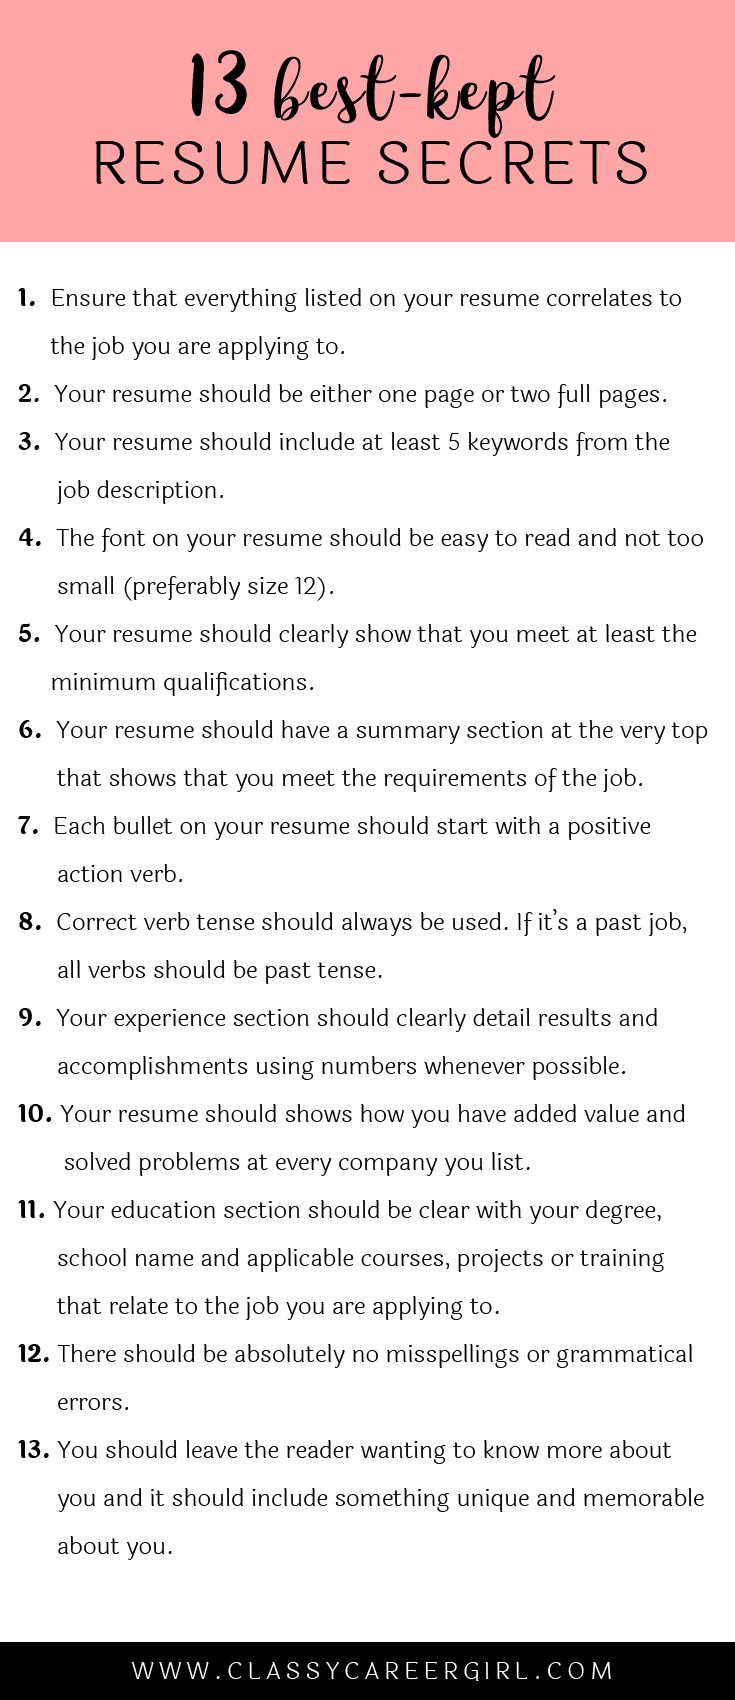 Opposenewapstandardsus  Pleasing  Ideas About Resume On Pinterest  Cv Format Resume Cv And  With Entrancing Some Hiring Managers Will Toss Your Resume Out If You Dont Know These  With Breathtaking Chronofunctional Resume Also Administrative Coordinator Resume In Addition Burger King Resume And Font Size On Resume As Well As Sample Basic Resume Additionally Microsoft Free Resume Templates From Pinterestcom With Opposenewapstandardsus  Entrancing  Ideas About Resume On Pinterest  Cv Format Resume Cv And  With Breathtaking Some Hiring Managers Will Toss Your Resume Out If You Dont Know These  And Pleasing Chronofunctional Resume Also Administrative Coordinator Resume In Addition Burger King Resume From Pinterestcom